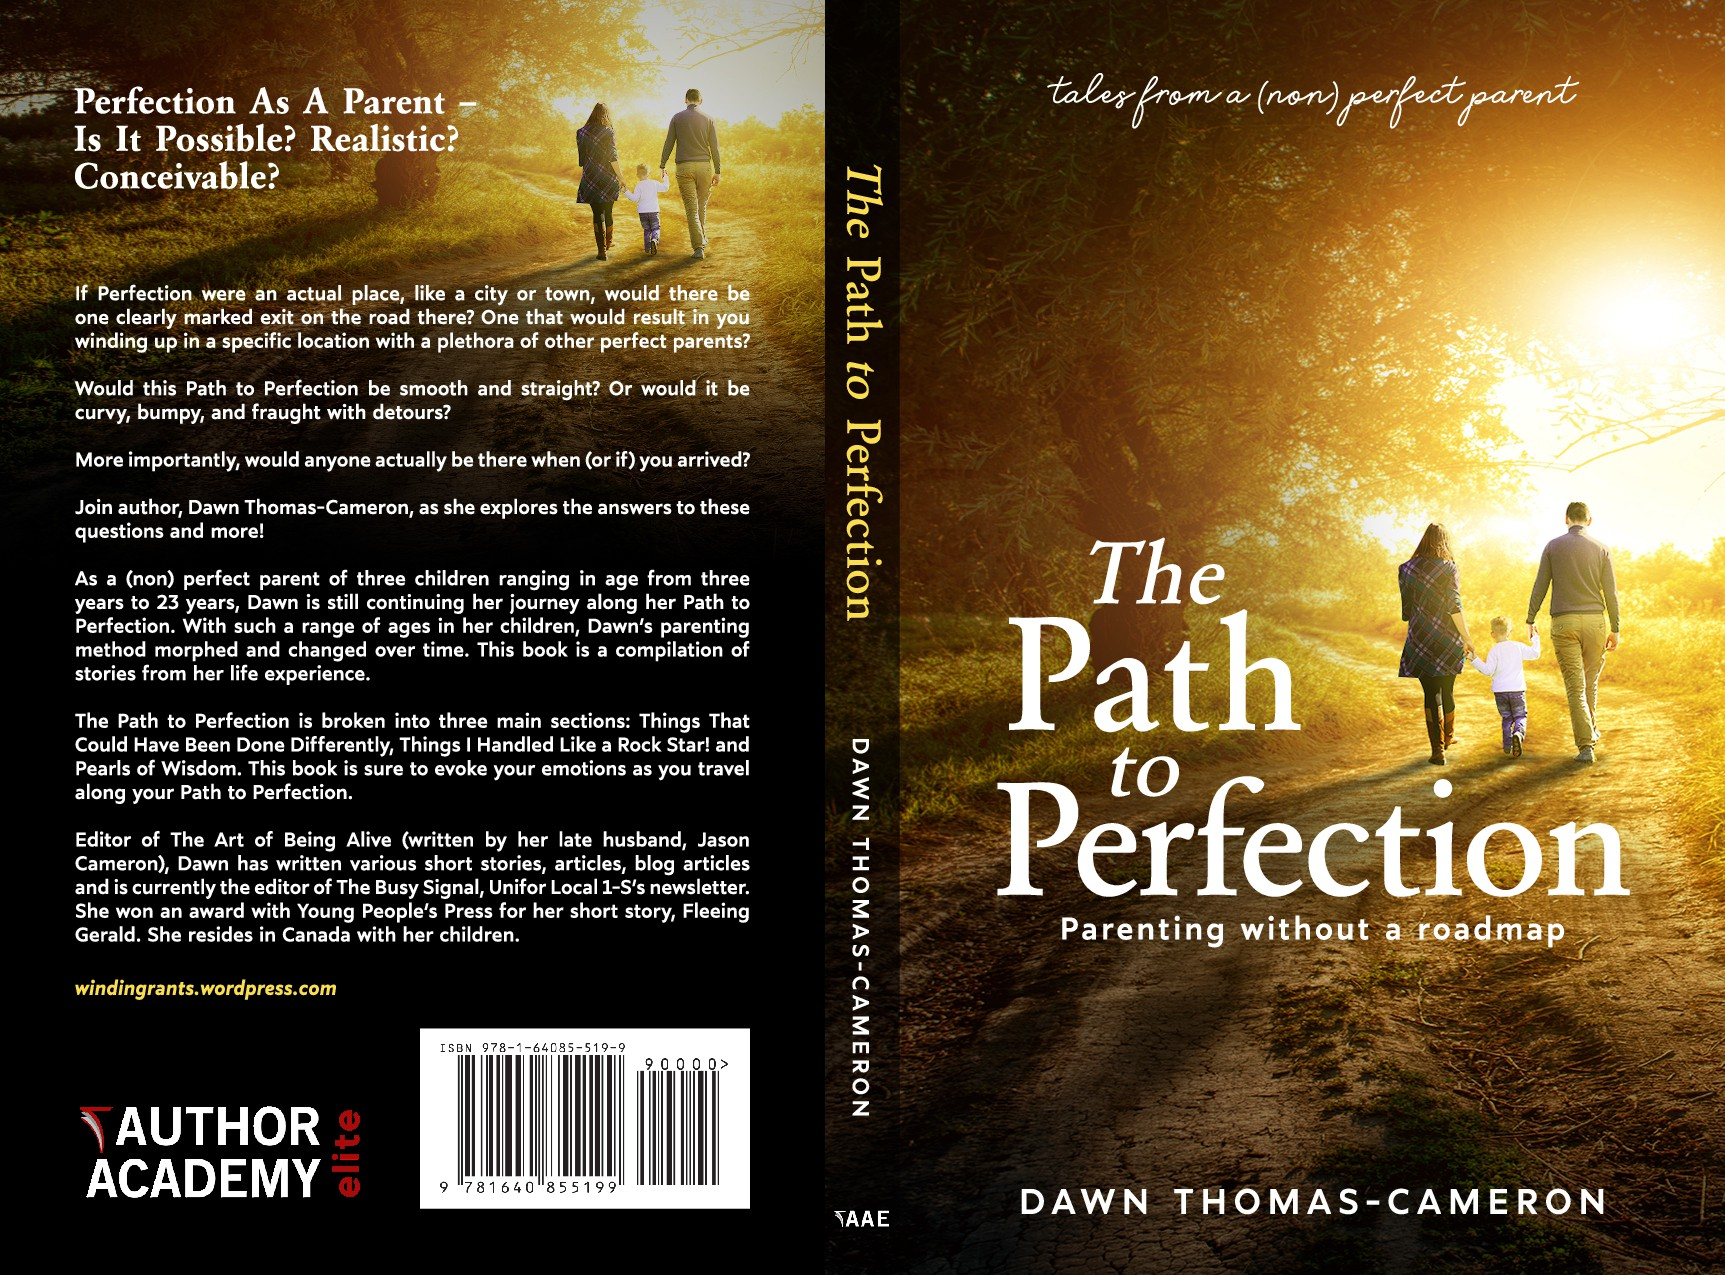 Create a non-fiction book cover with the potential for follow-up paid projects